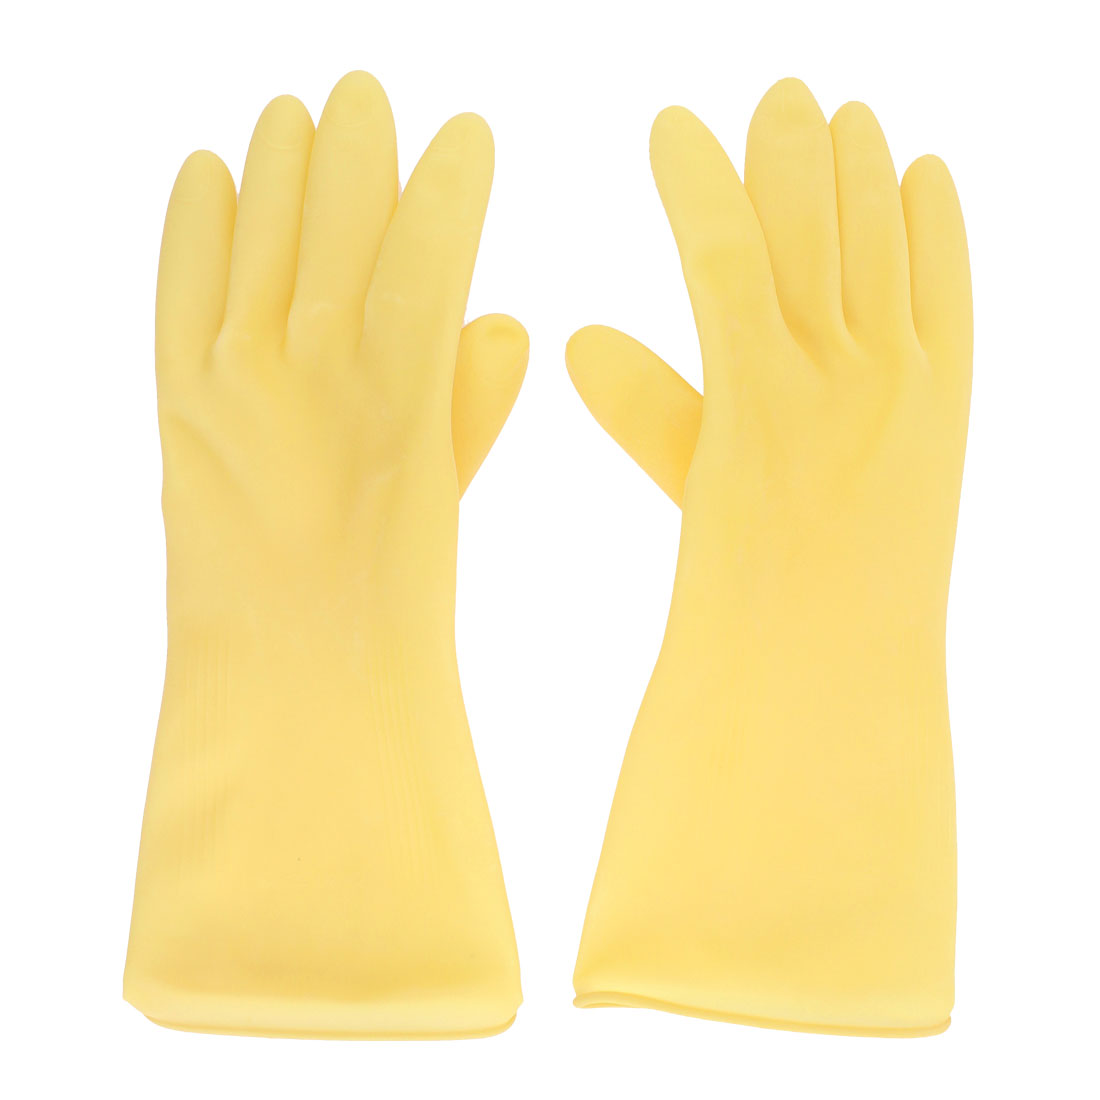 House Work Clean Washing Warm Dry Latex Gloves Hand Protector Yellow Pair